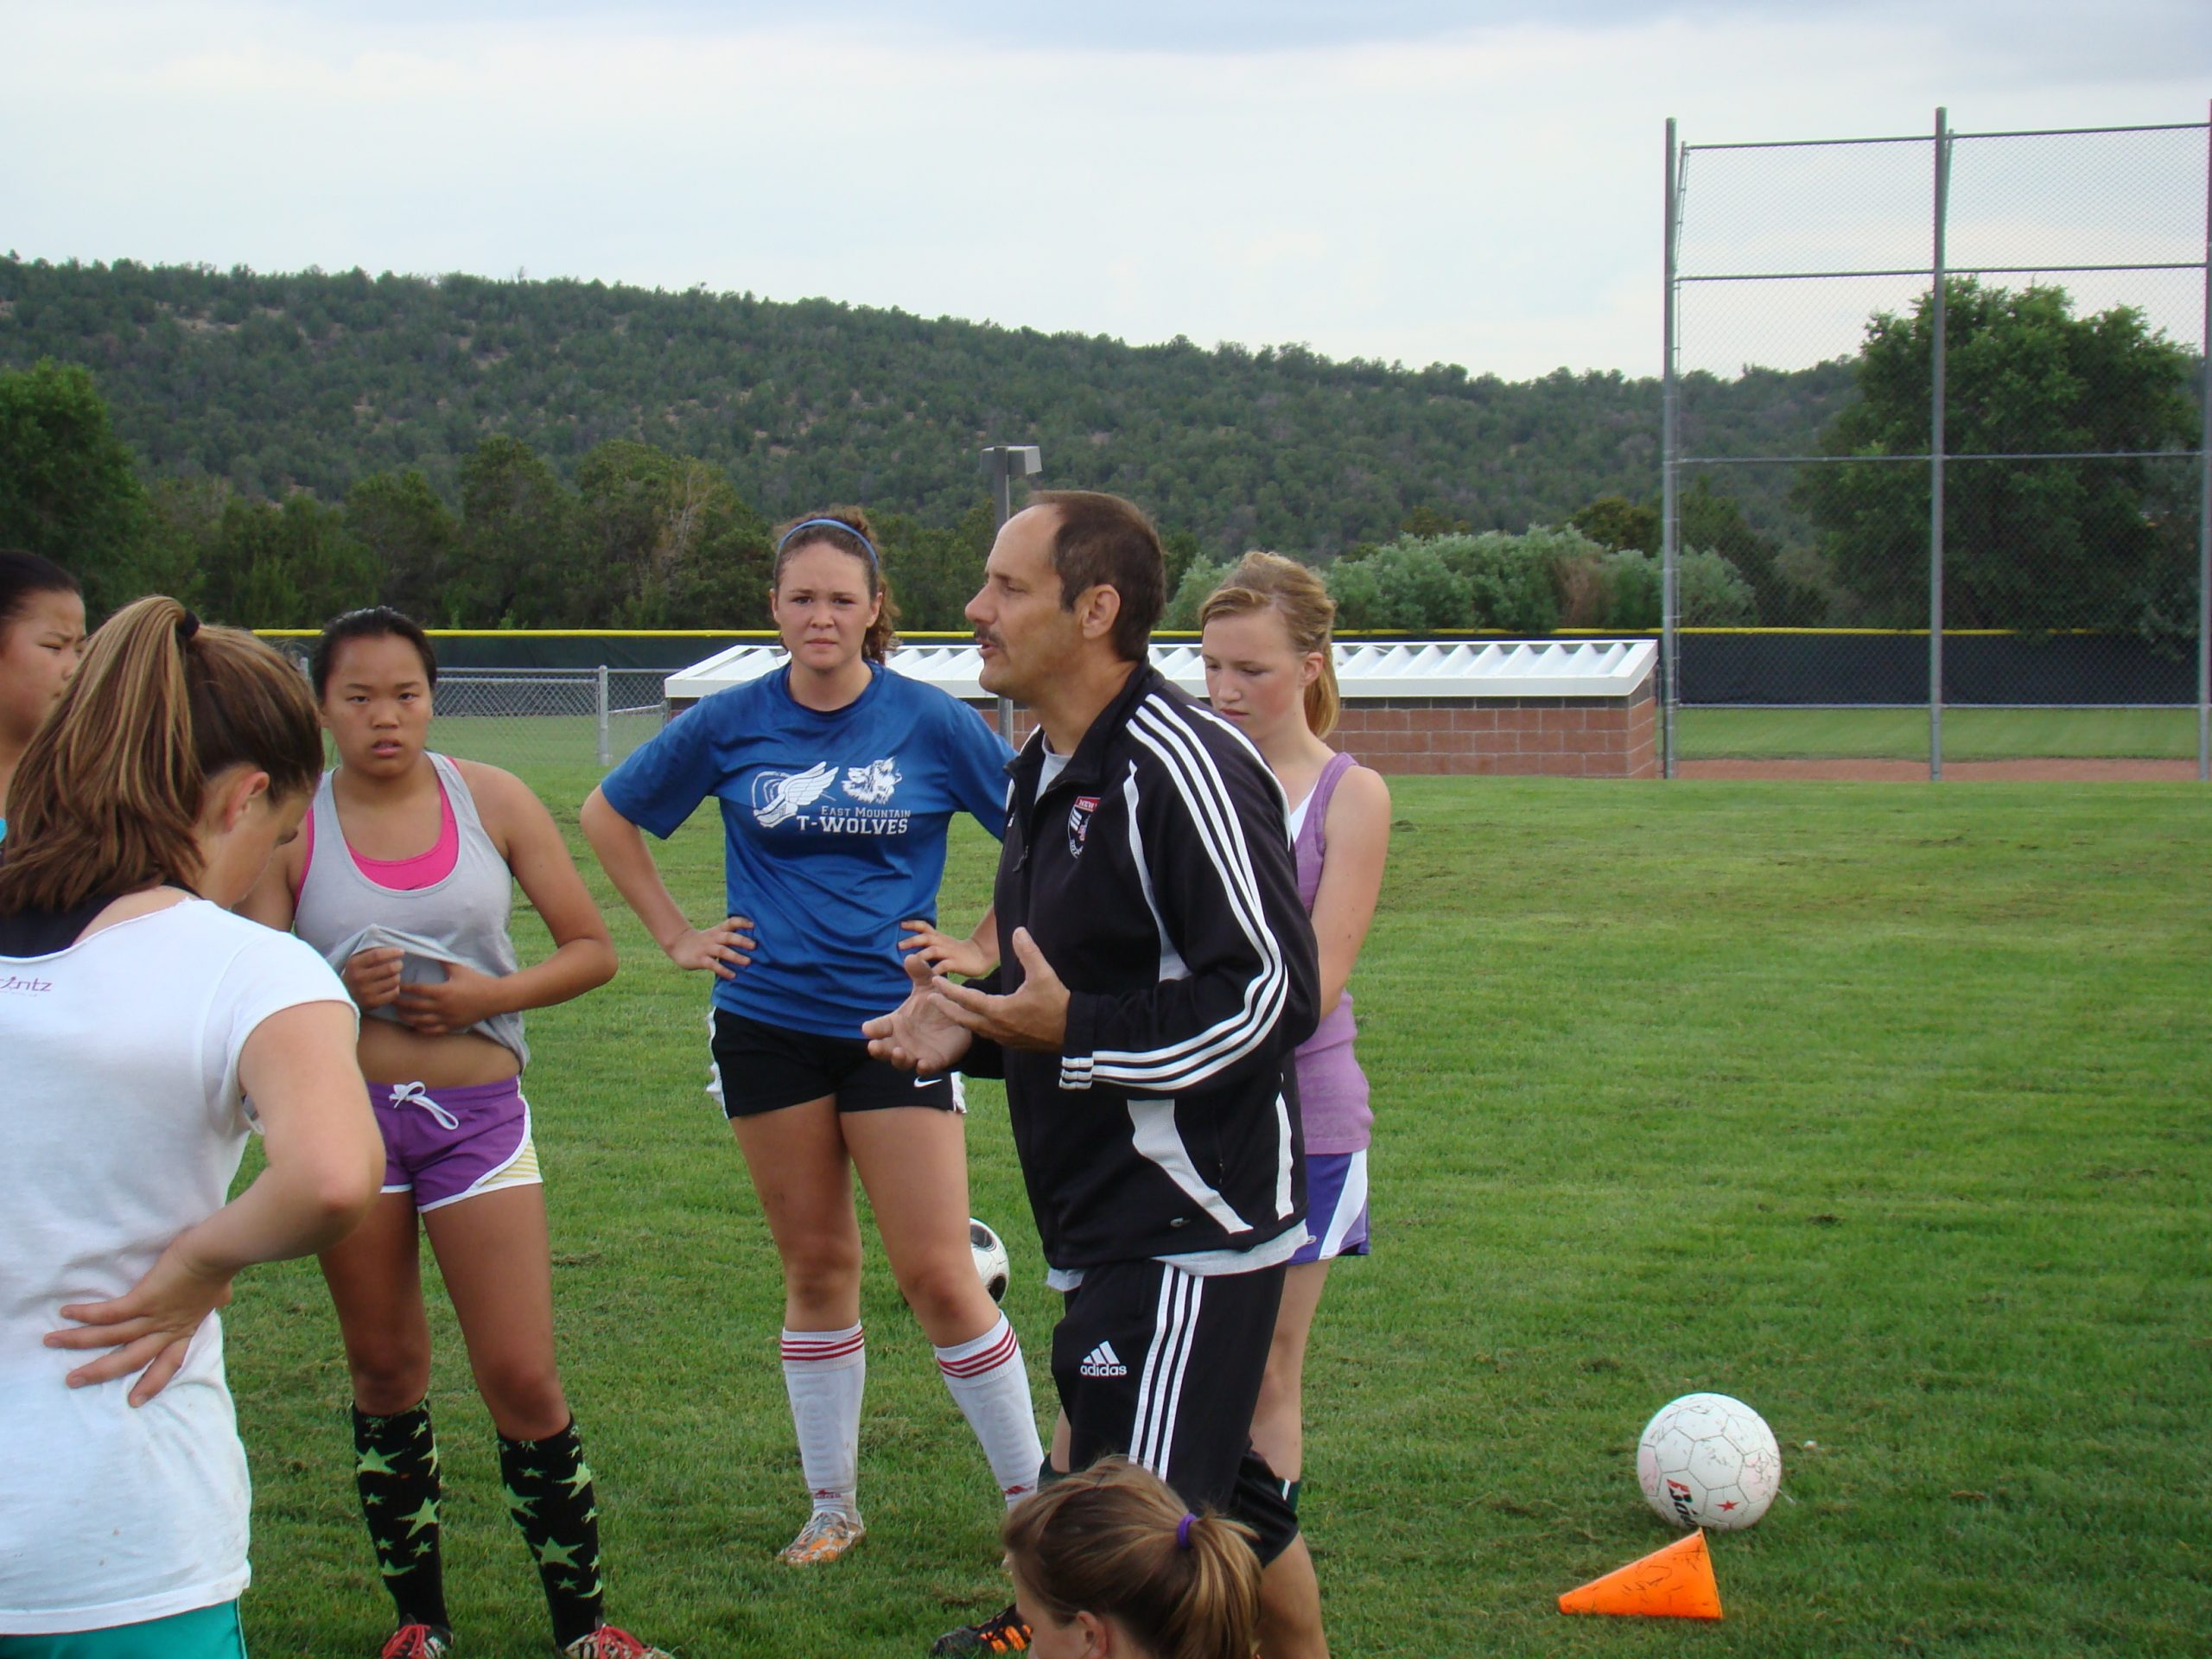 New East Mtn. girls soccer coach wants team to 'play smart soccer'